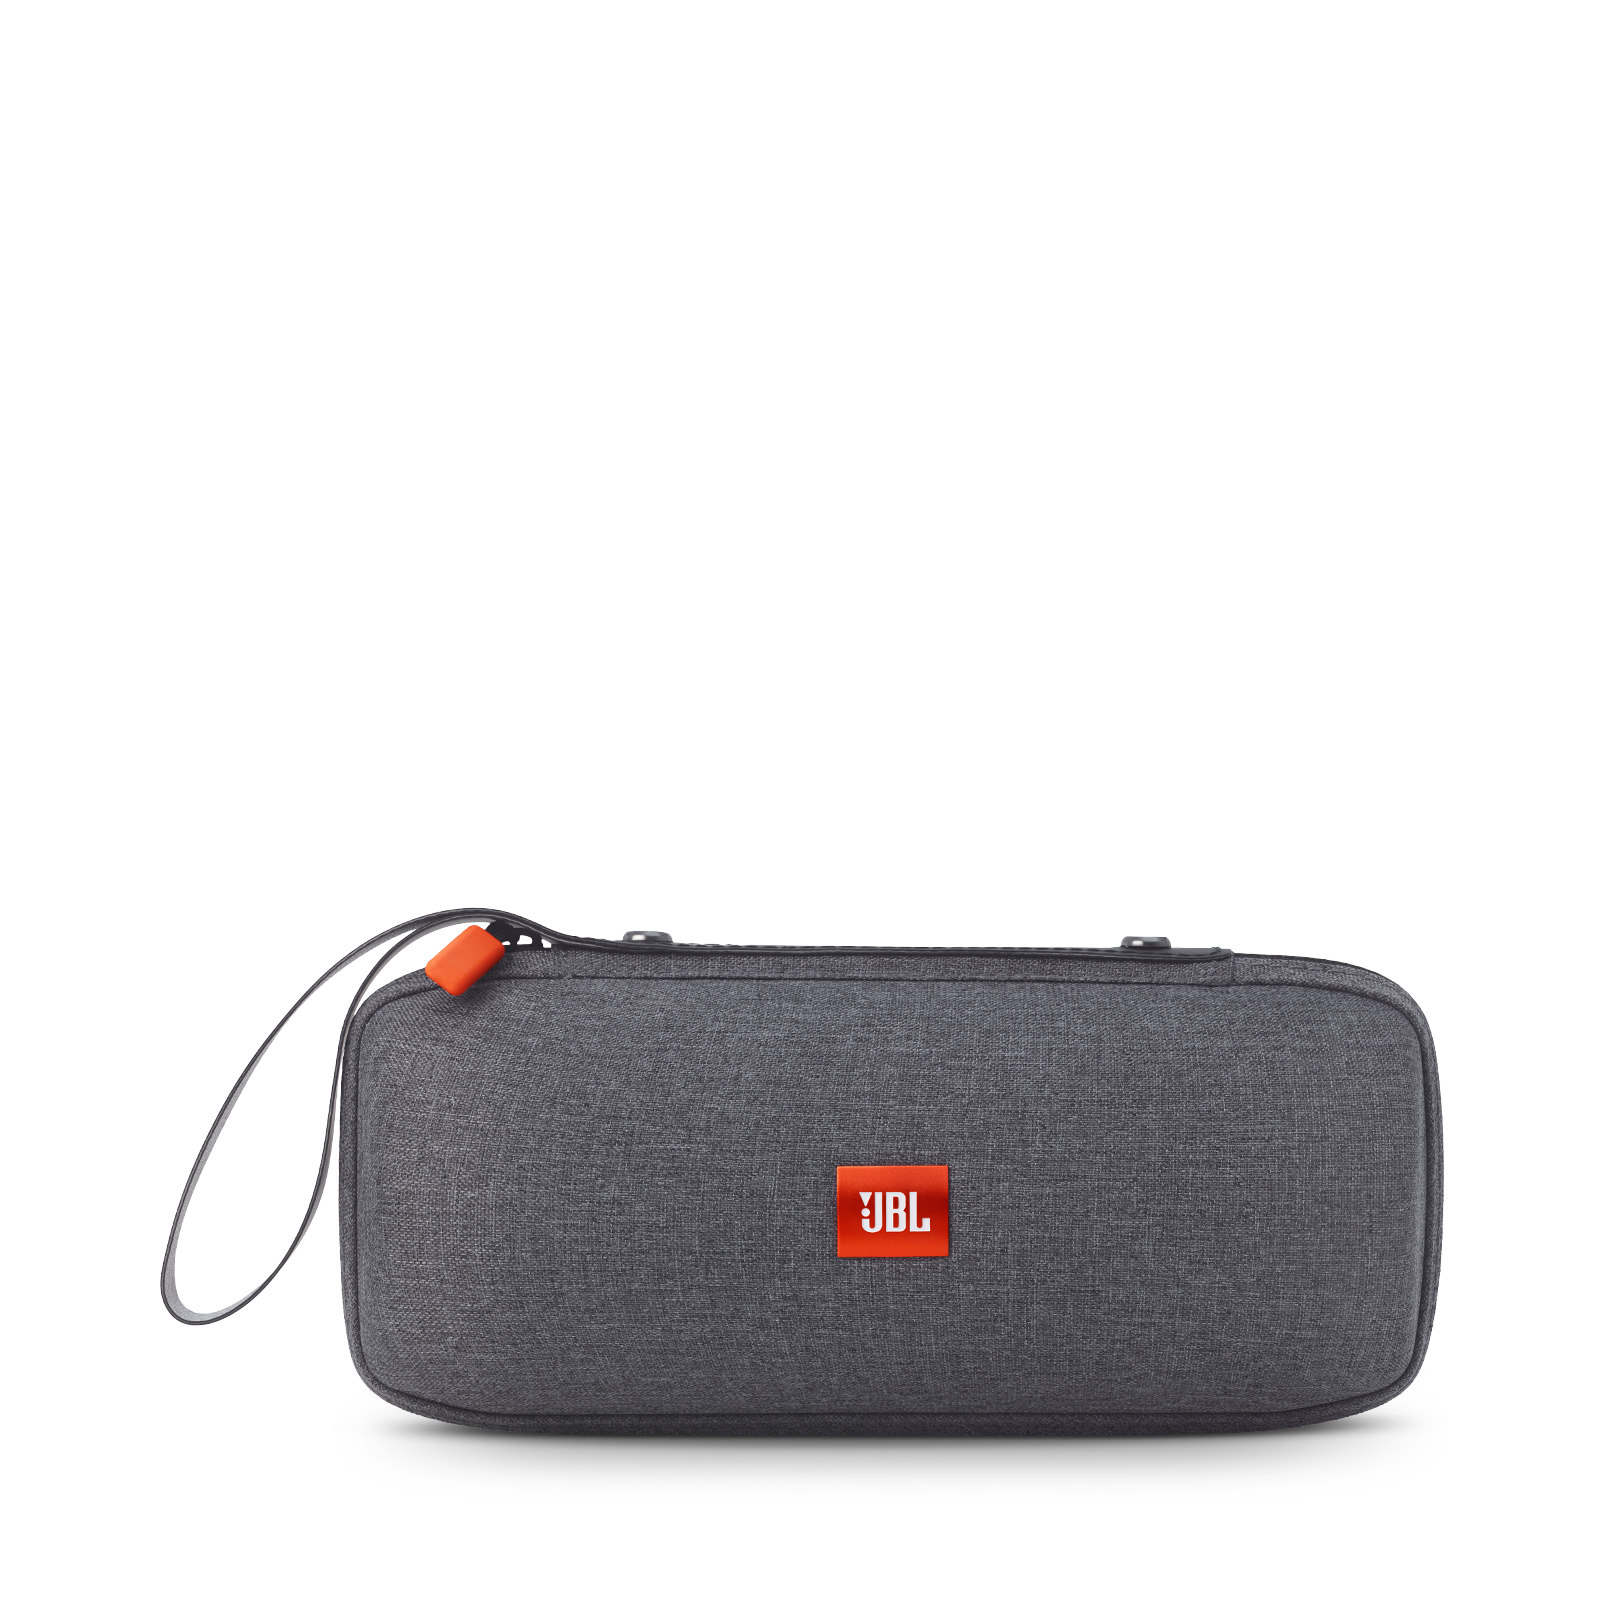 JBL Charge 3 Case - Grey - Carrying Case for JBL Charge 3 - Hero